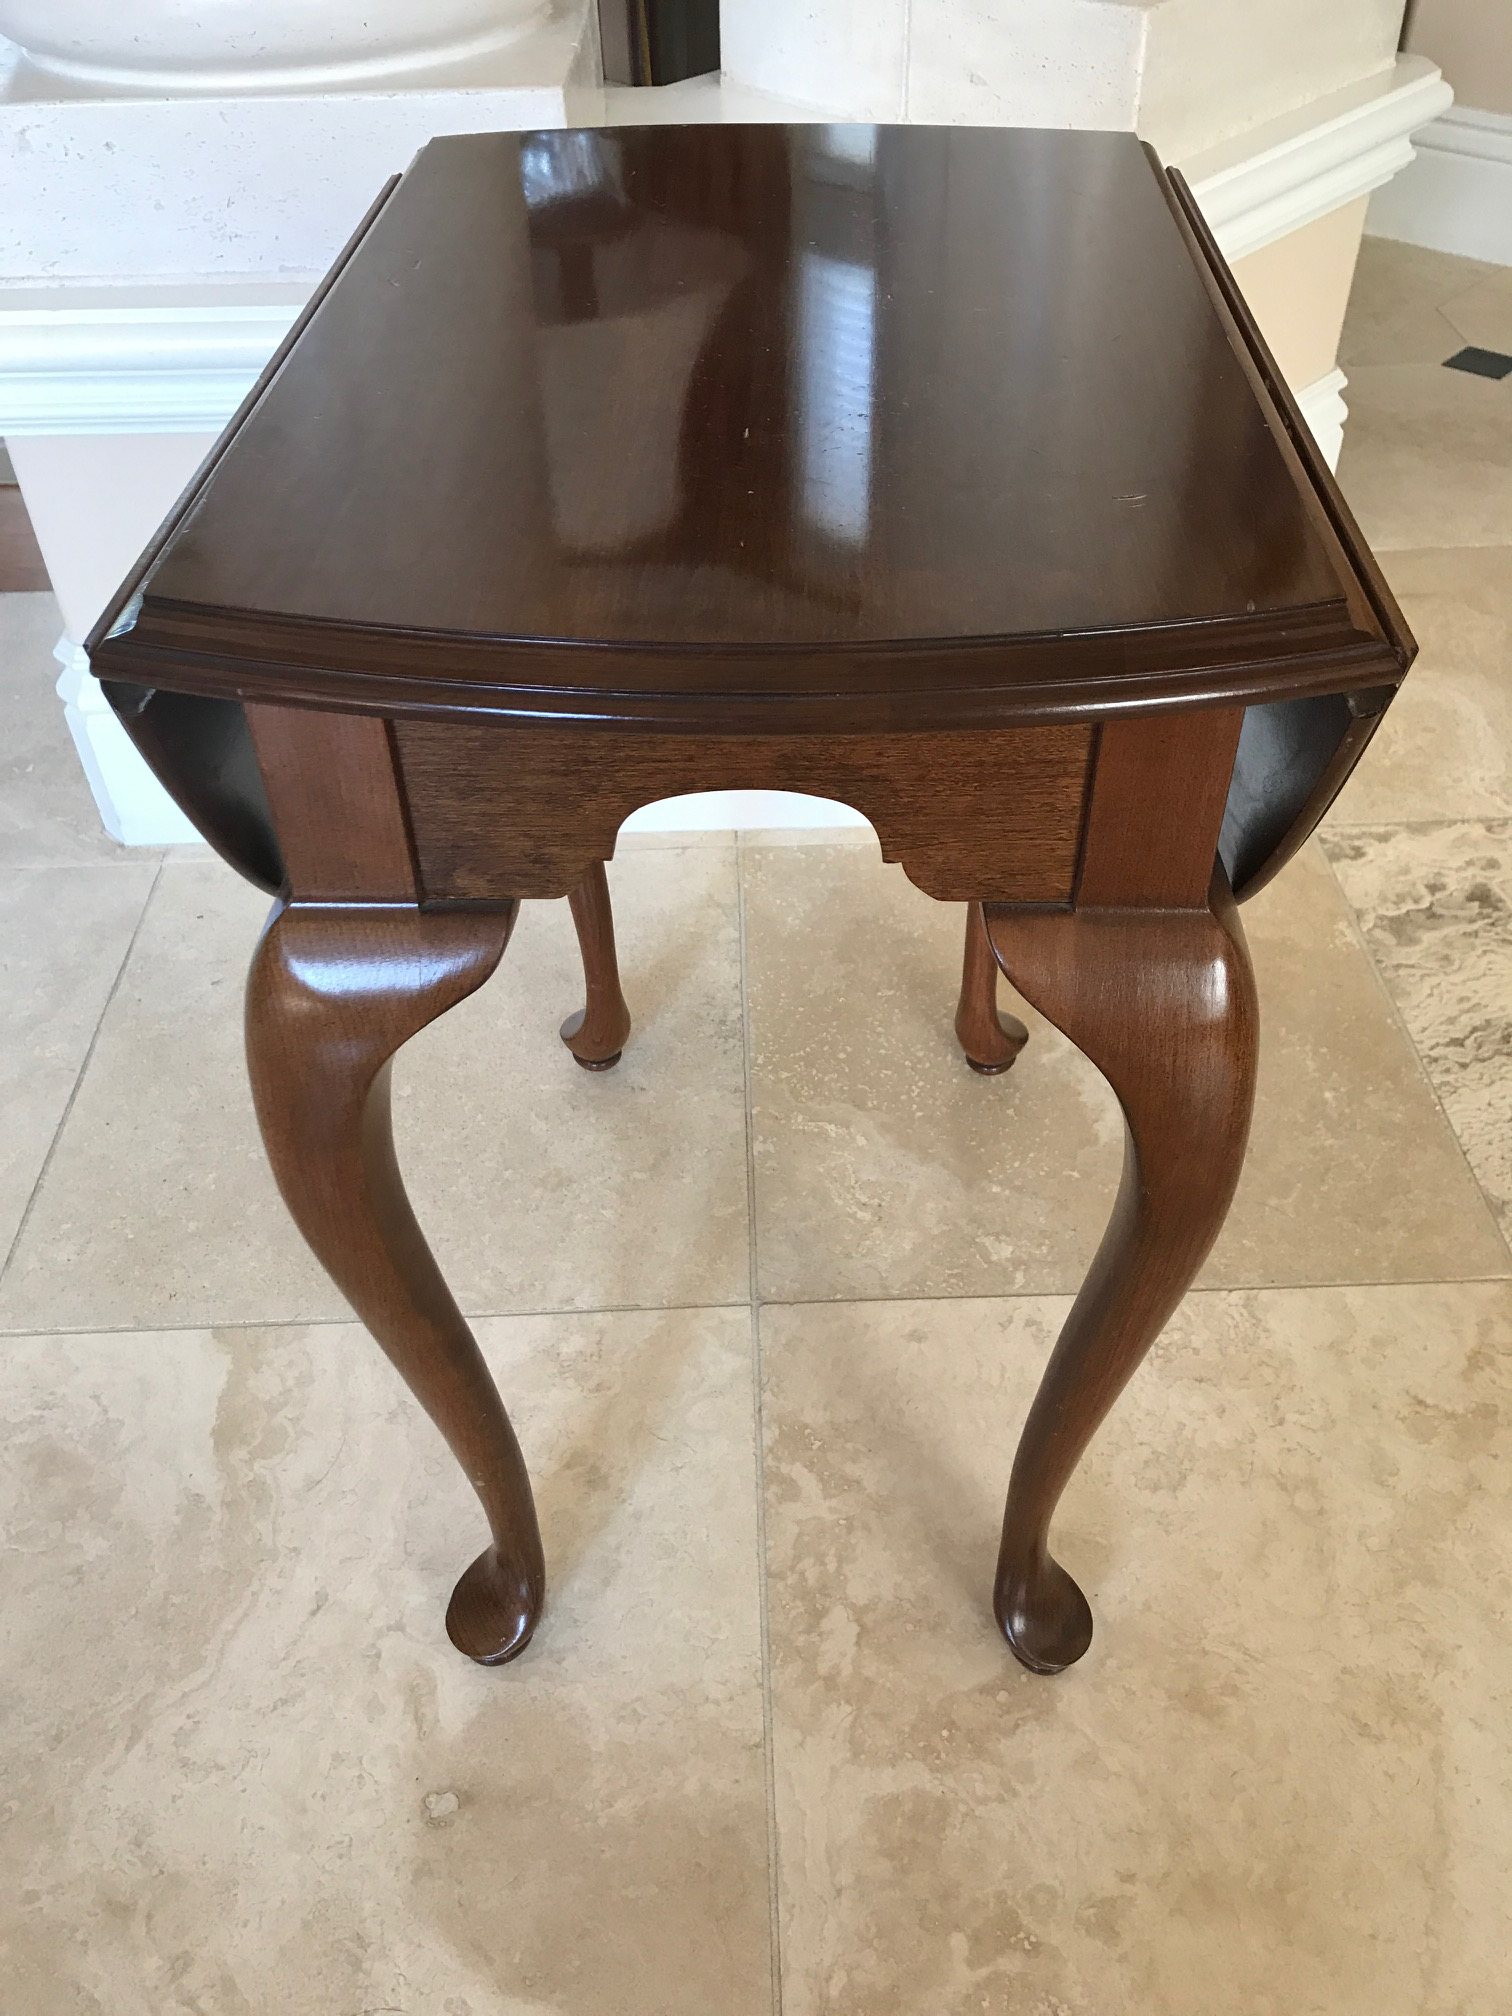 Ethan Allen Drop Leaf Solid Cherry Wood Accent Table Chairish